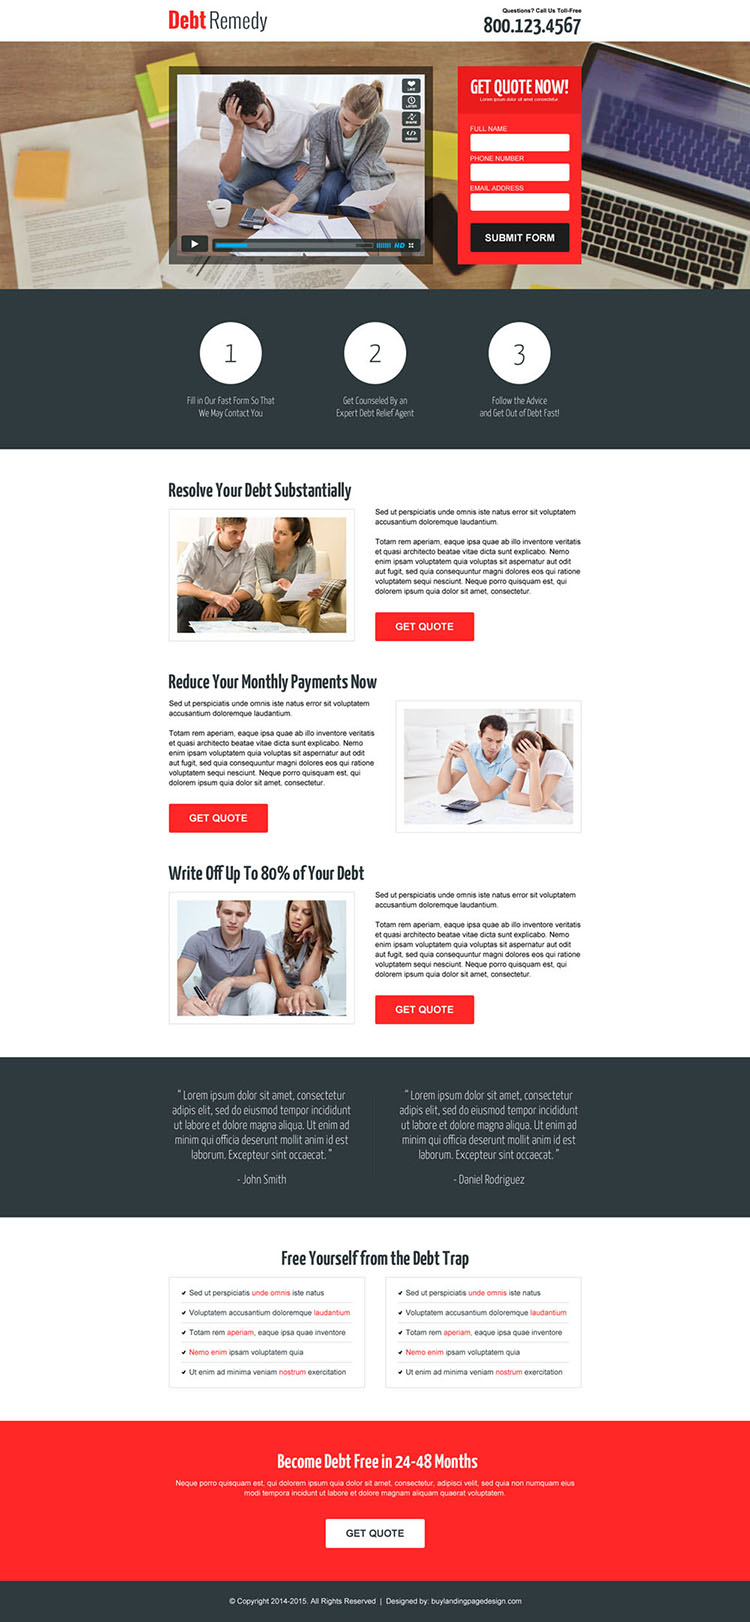 debt relief business converting responsive lead capture landing page design